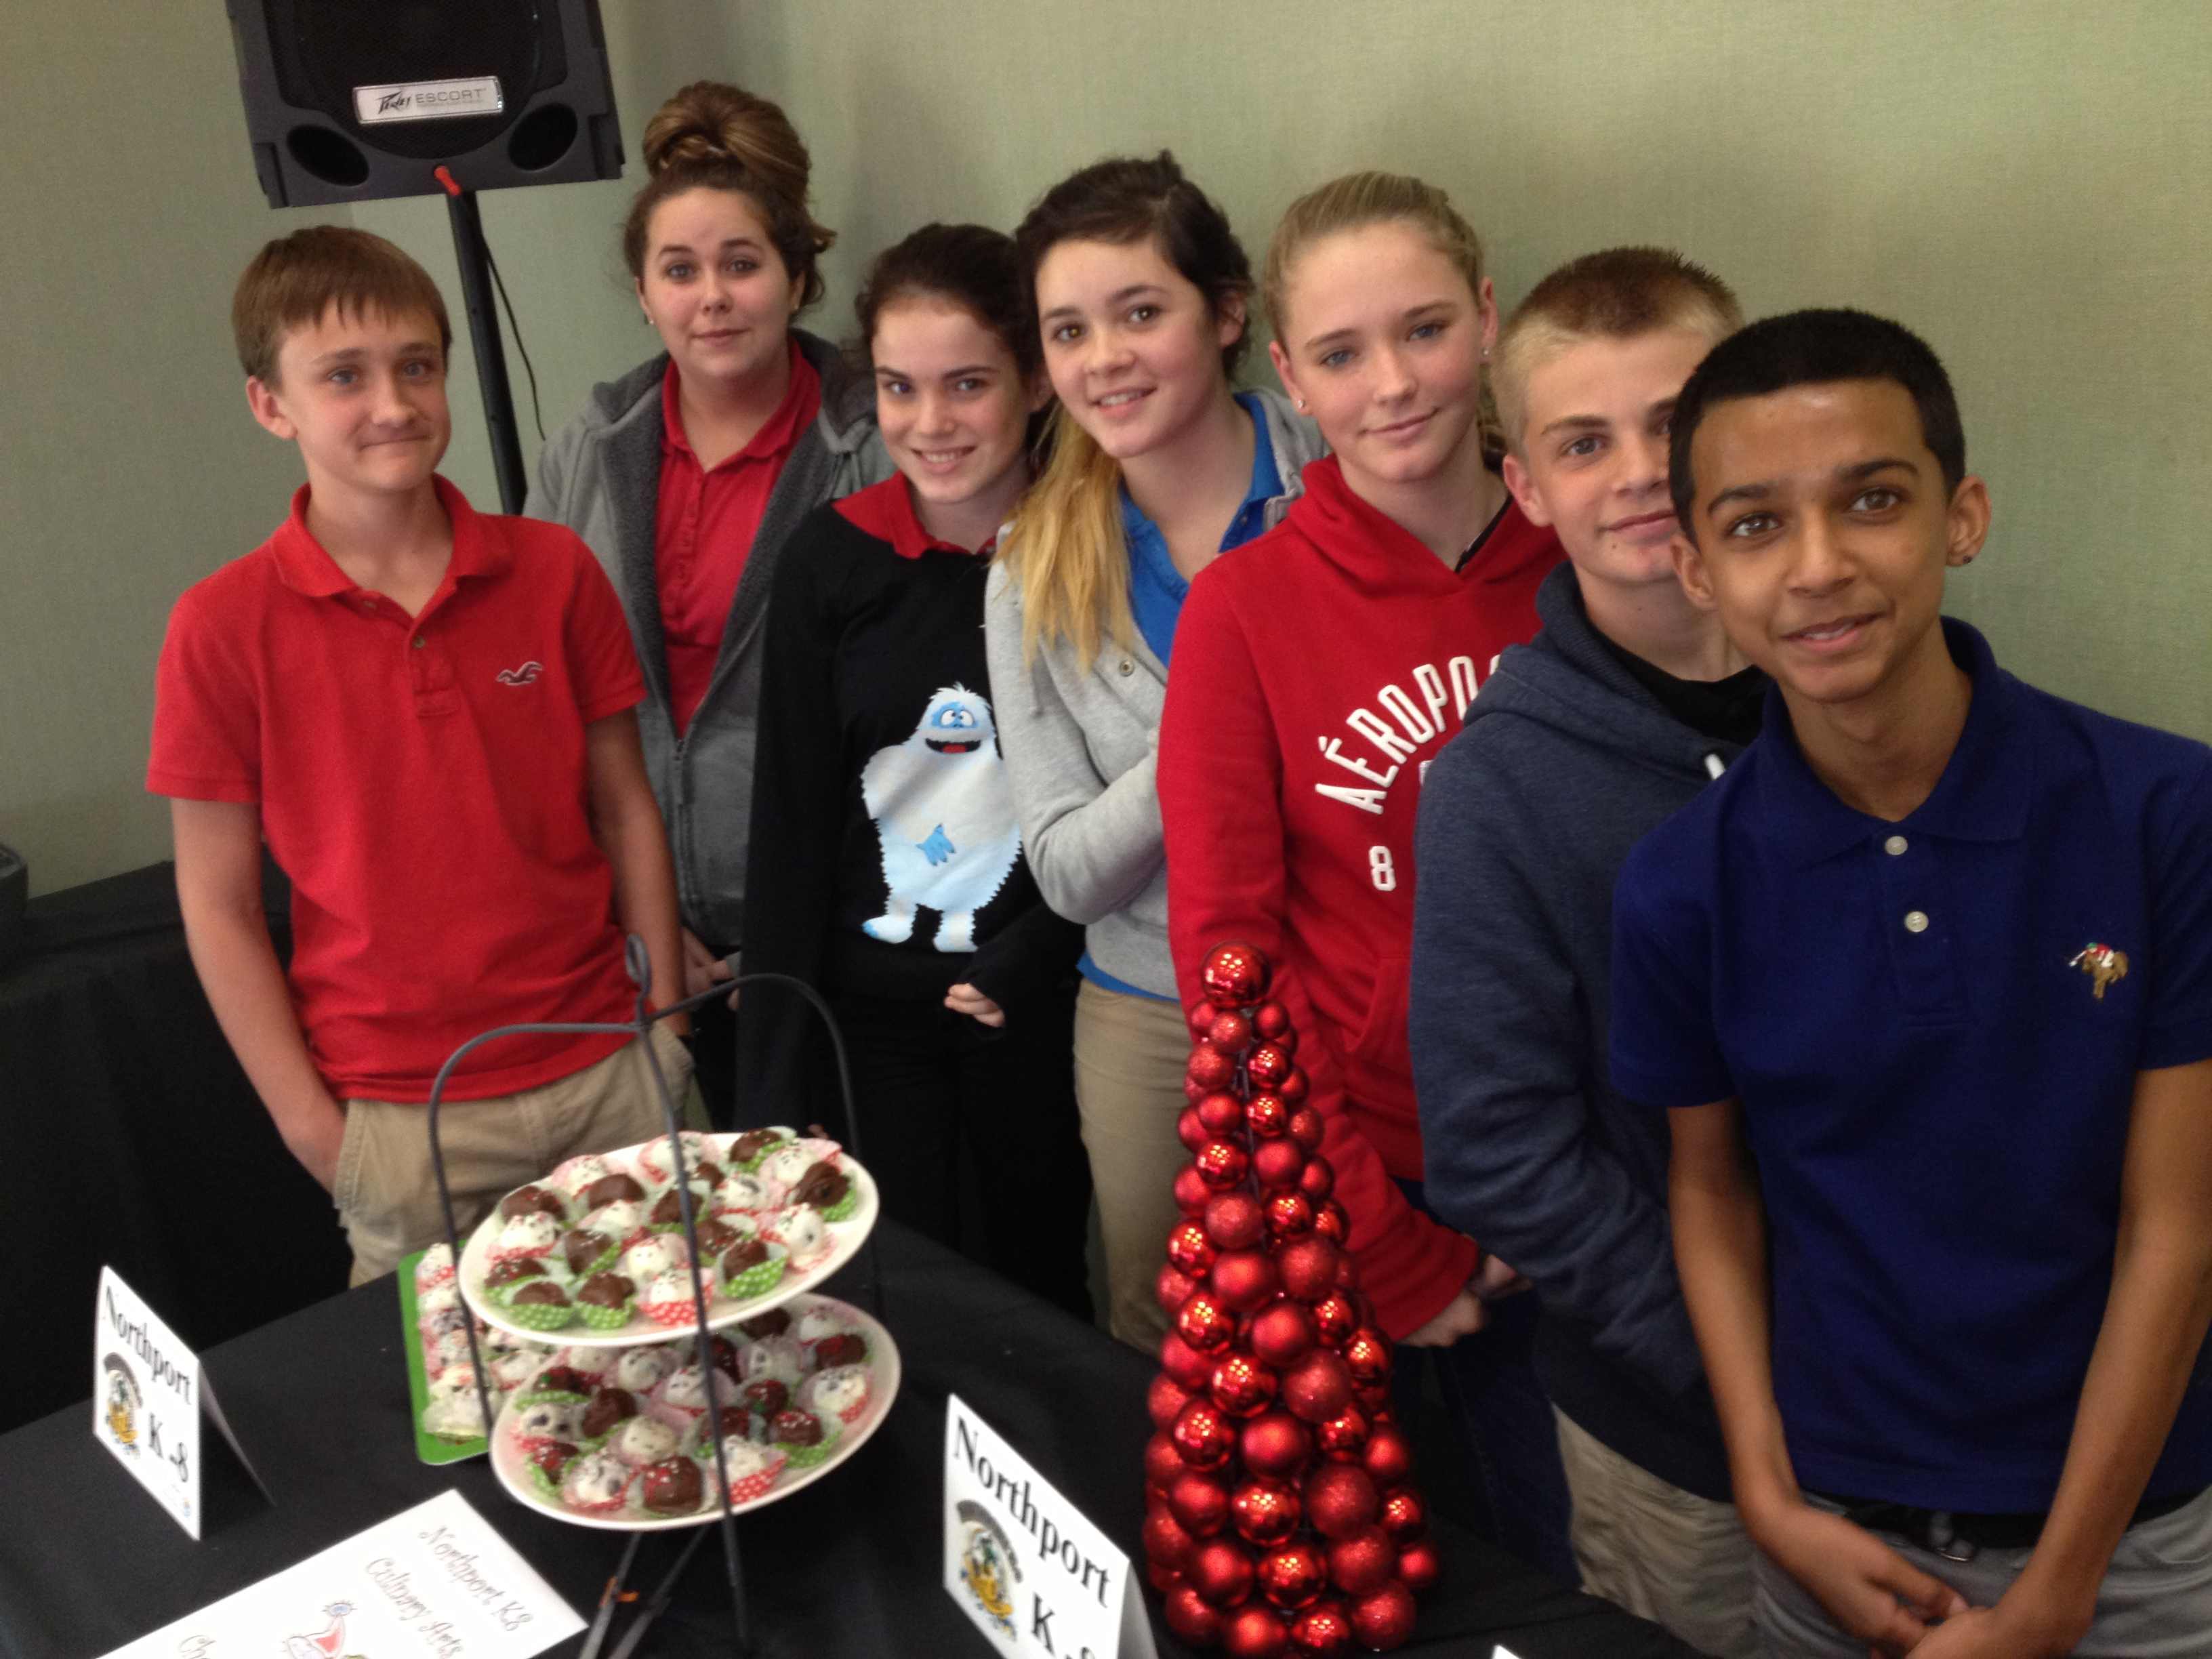 Northport culinary team showcases student achievement